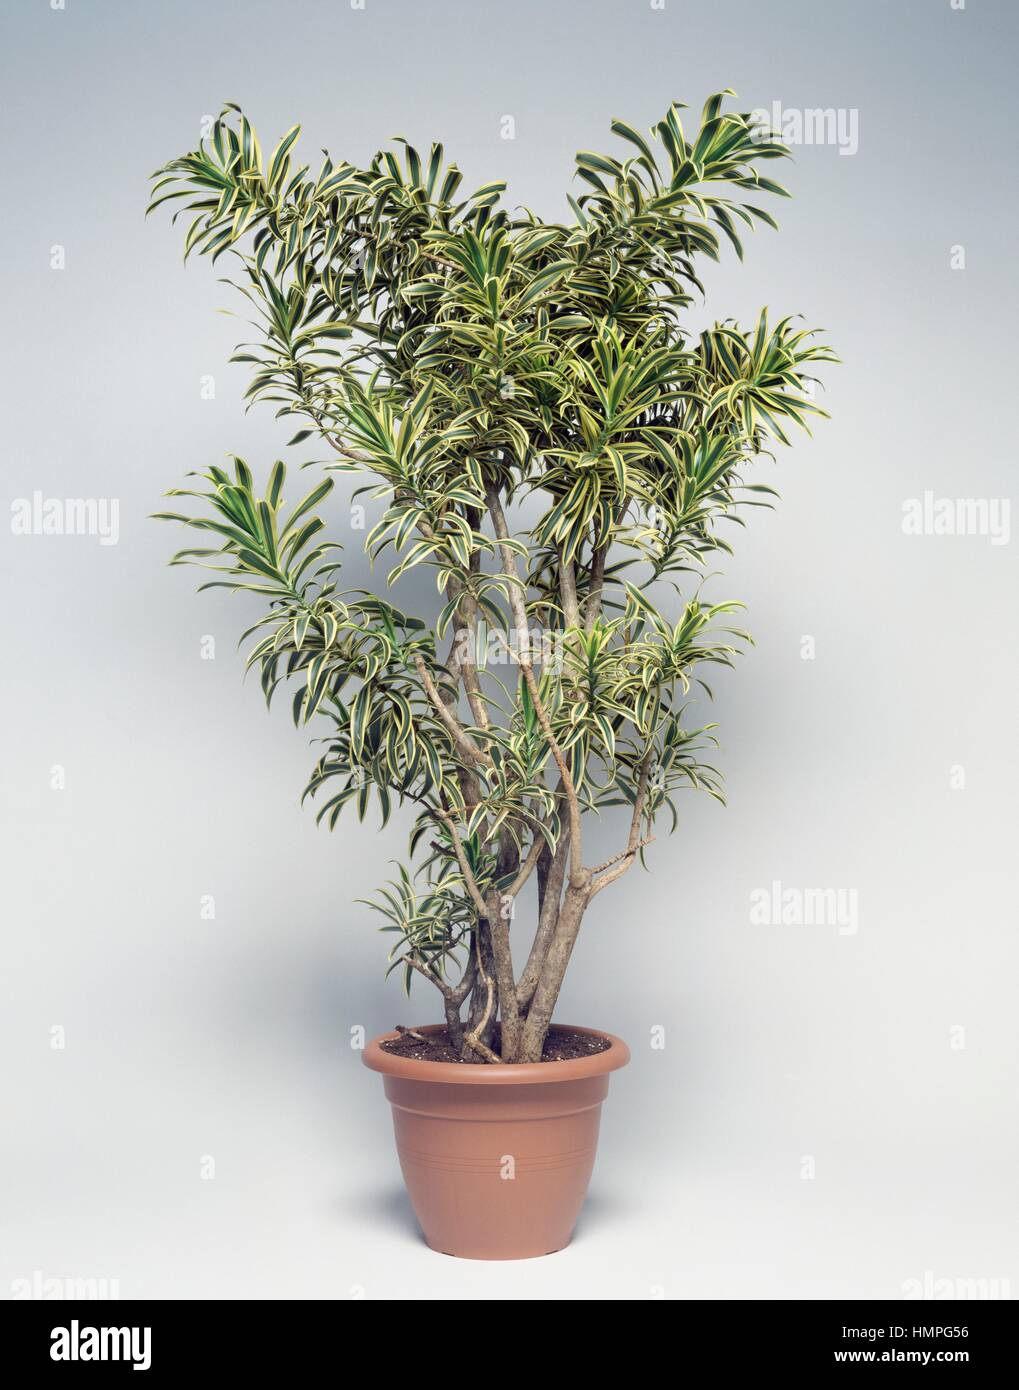 Pleomele Or Song Of India Dracaena Reflexa Asparagaceae Stock Photo Alamy